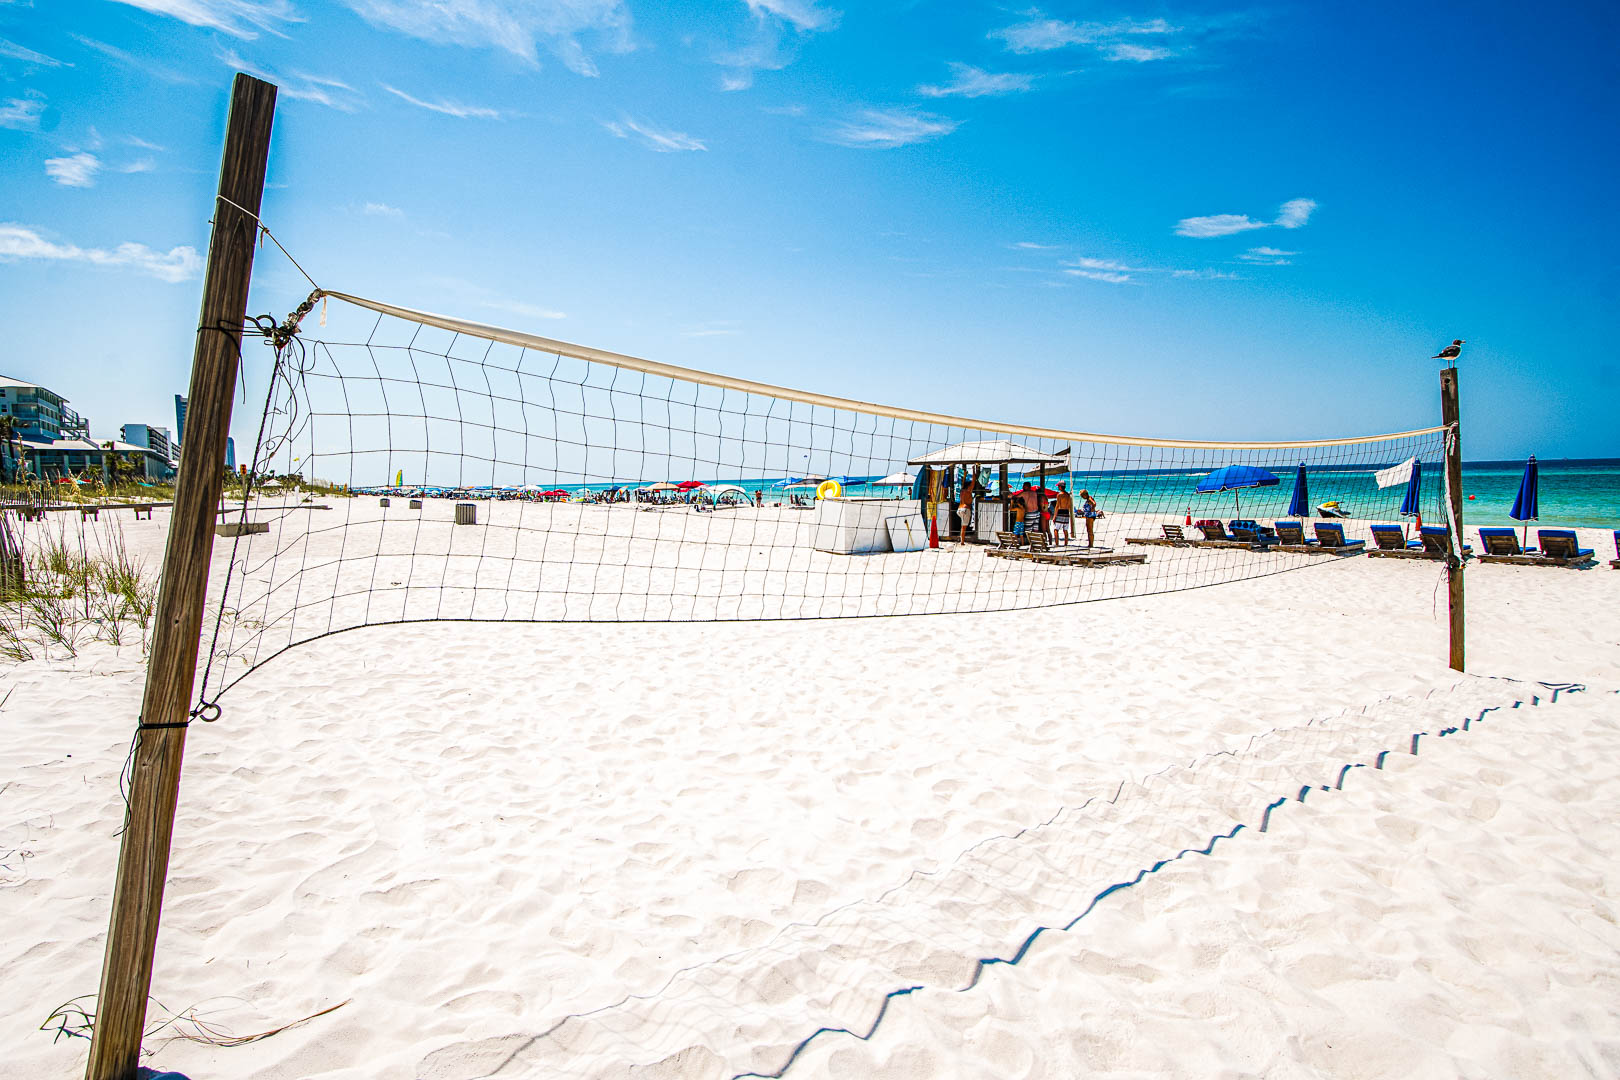 Volleyball onsite at VRI's Landmark Holiday Beach Resort in Panama City, Florida.